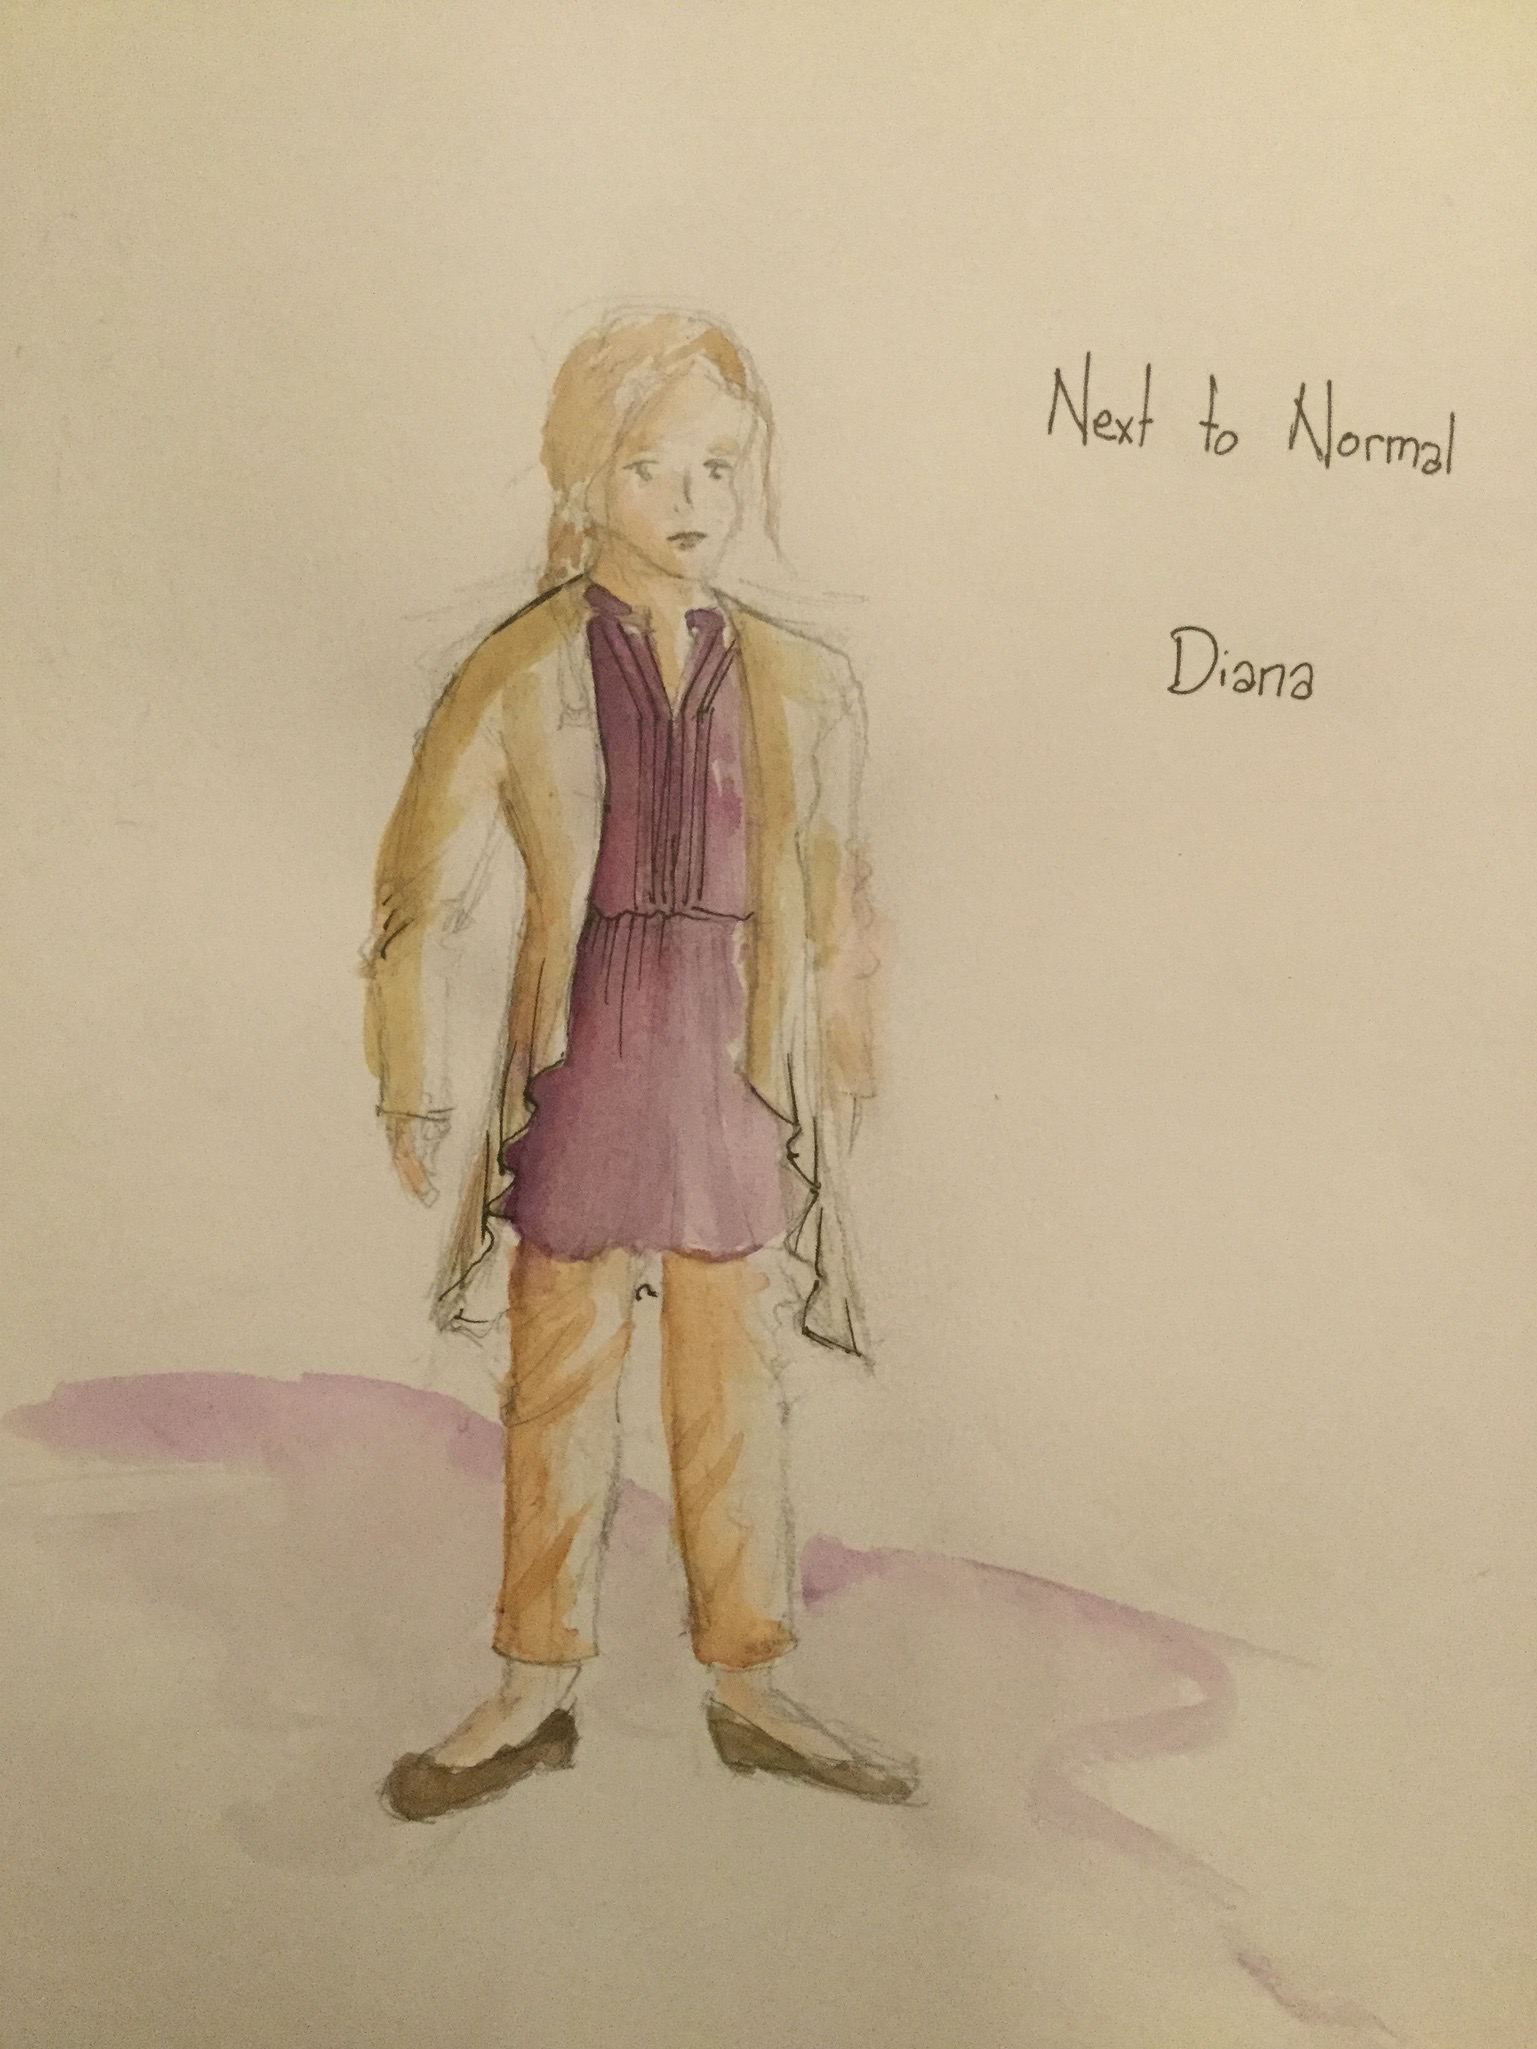 Dianne (Next To Normal)